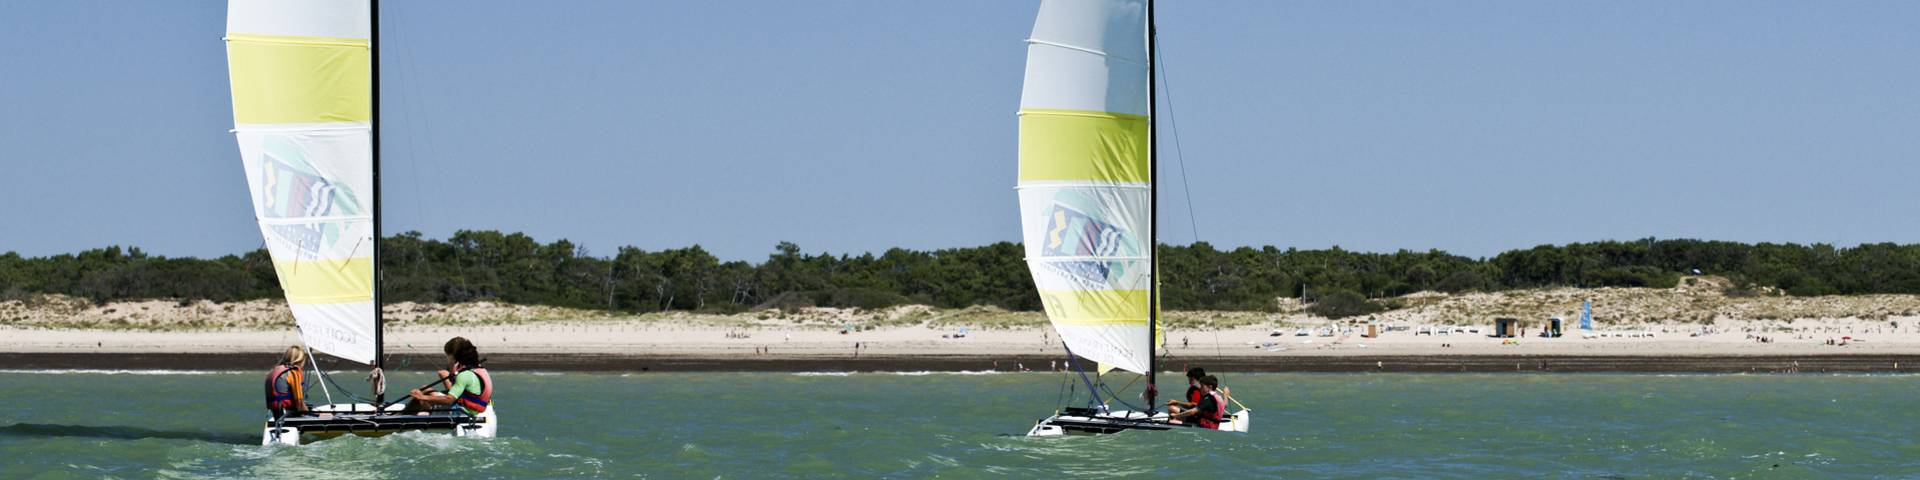 Activities in Rivedoux-Plage